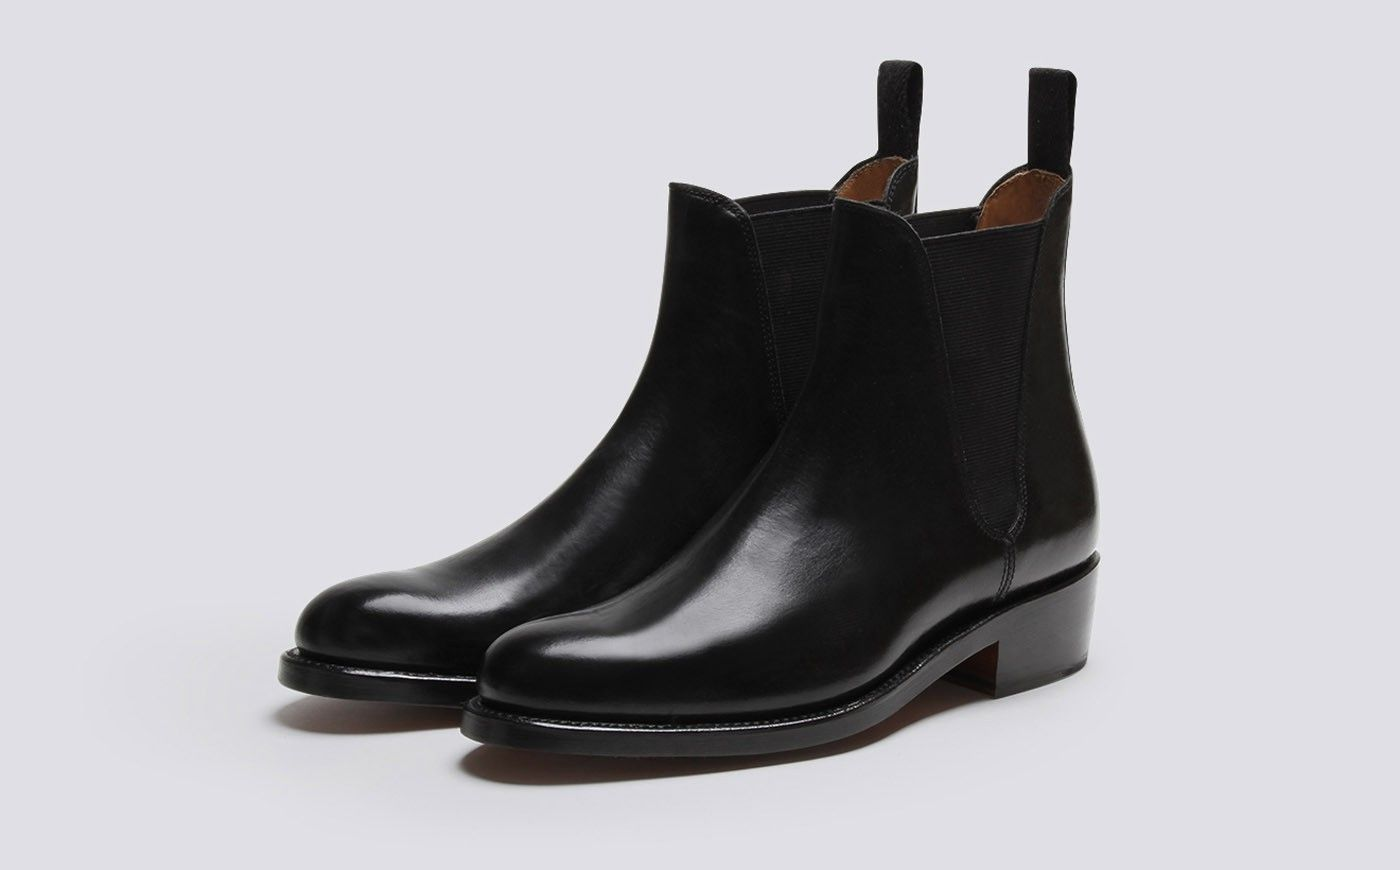 Grenson Shoes & Accessories | Nora Womens Chelsea Boot in